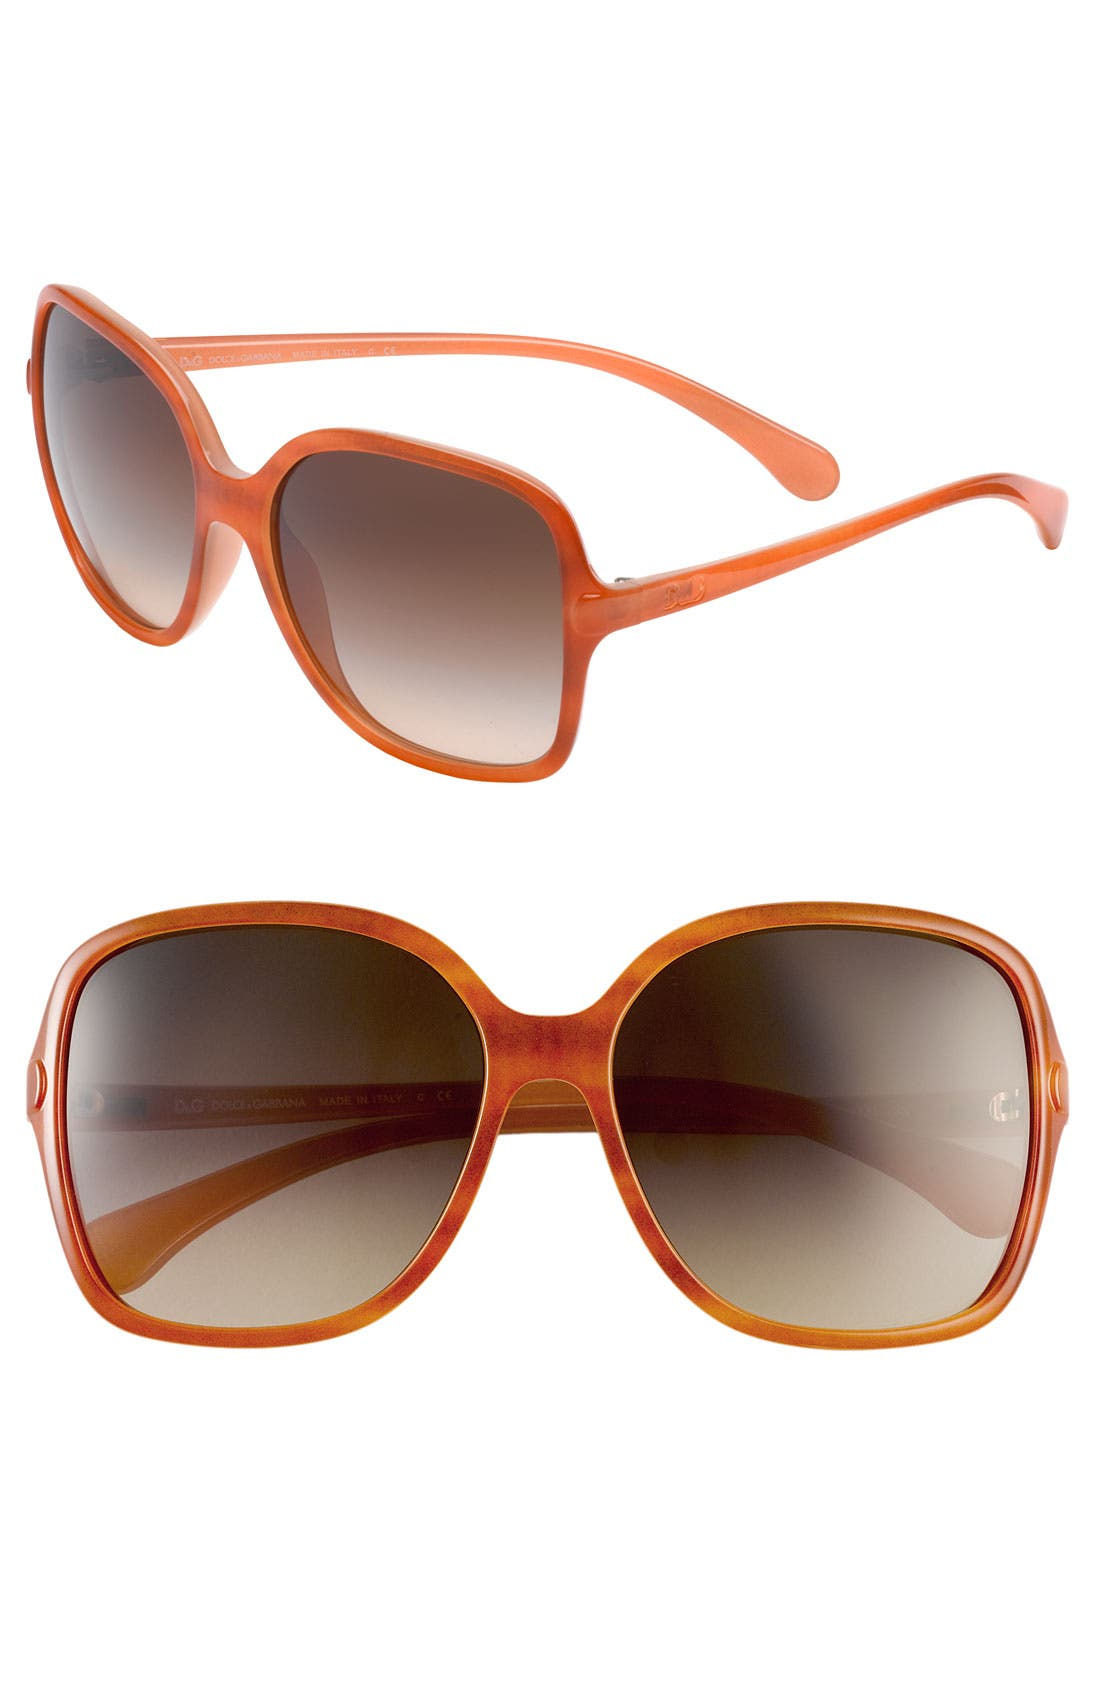 Main Image - D&G 'Large Glam' Square Sunglasses